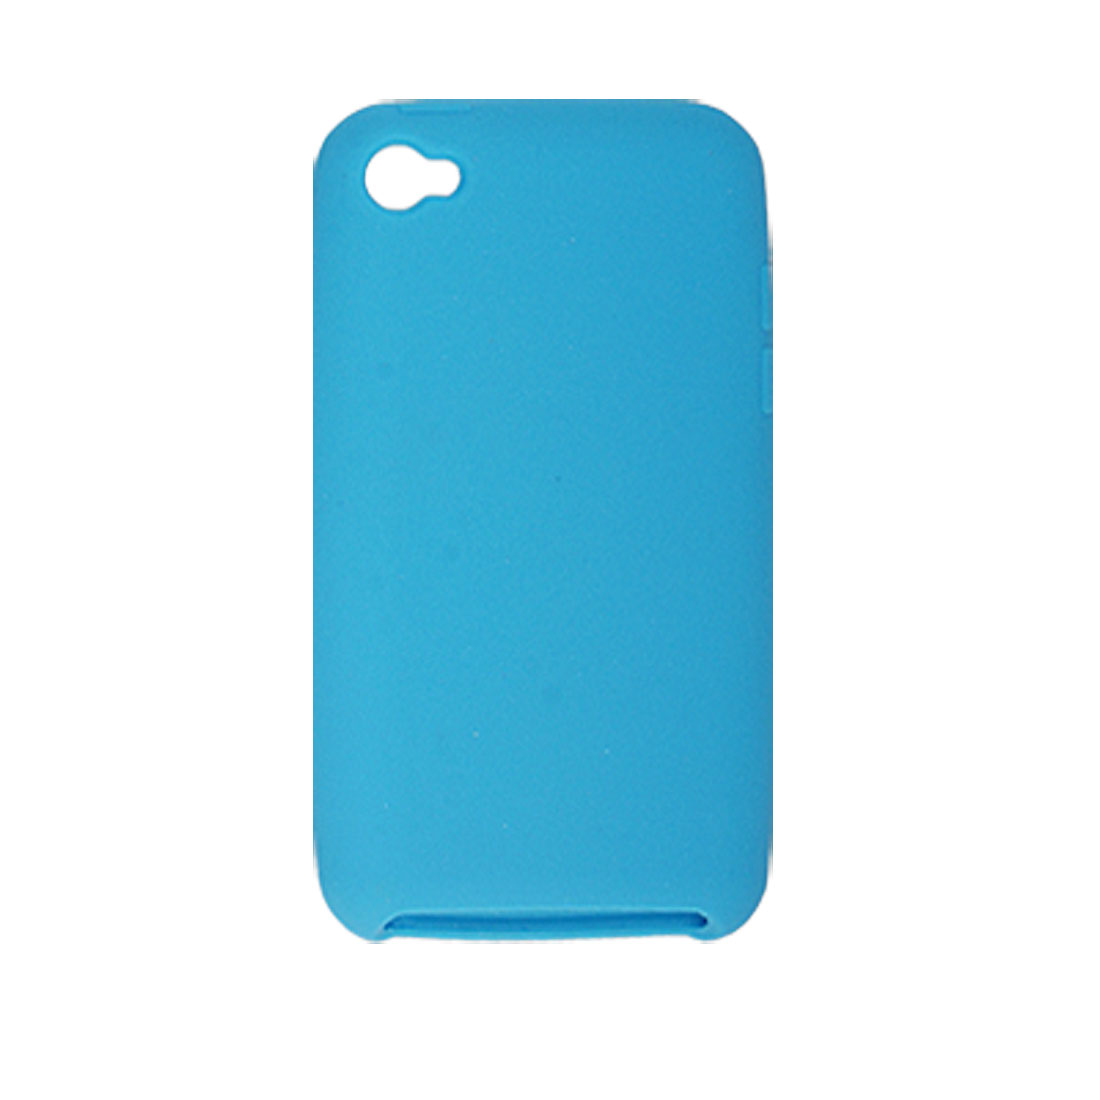 Blue Soft Silicone Skin Case Protector for iPod Touch 4G